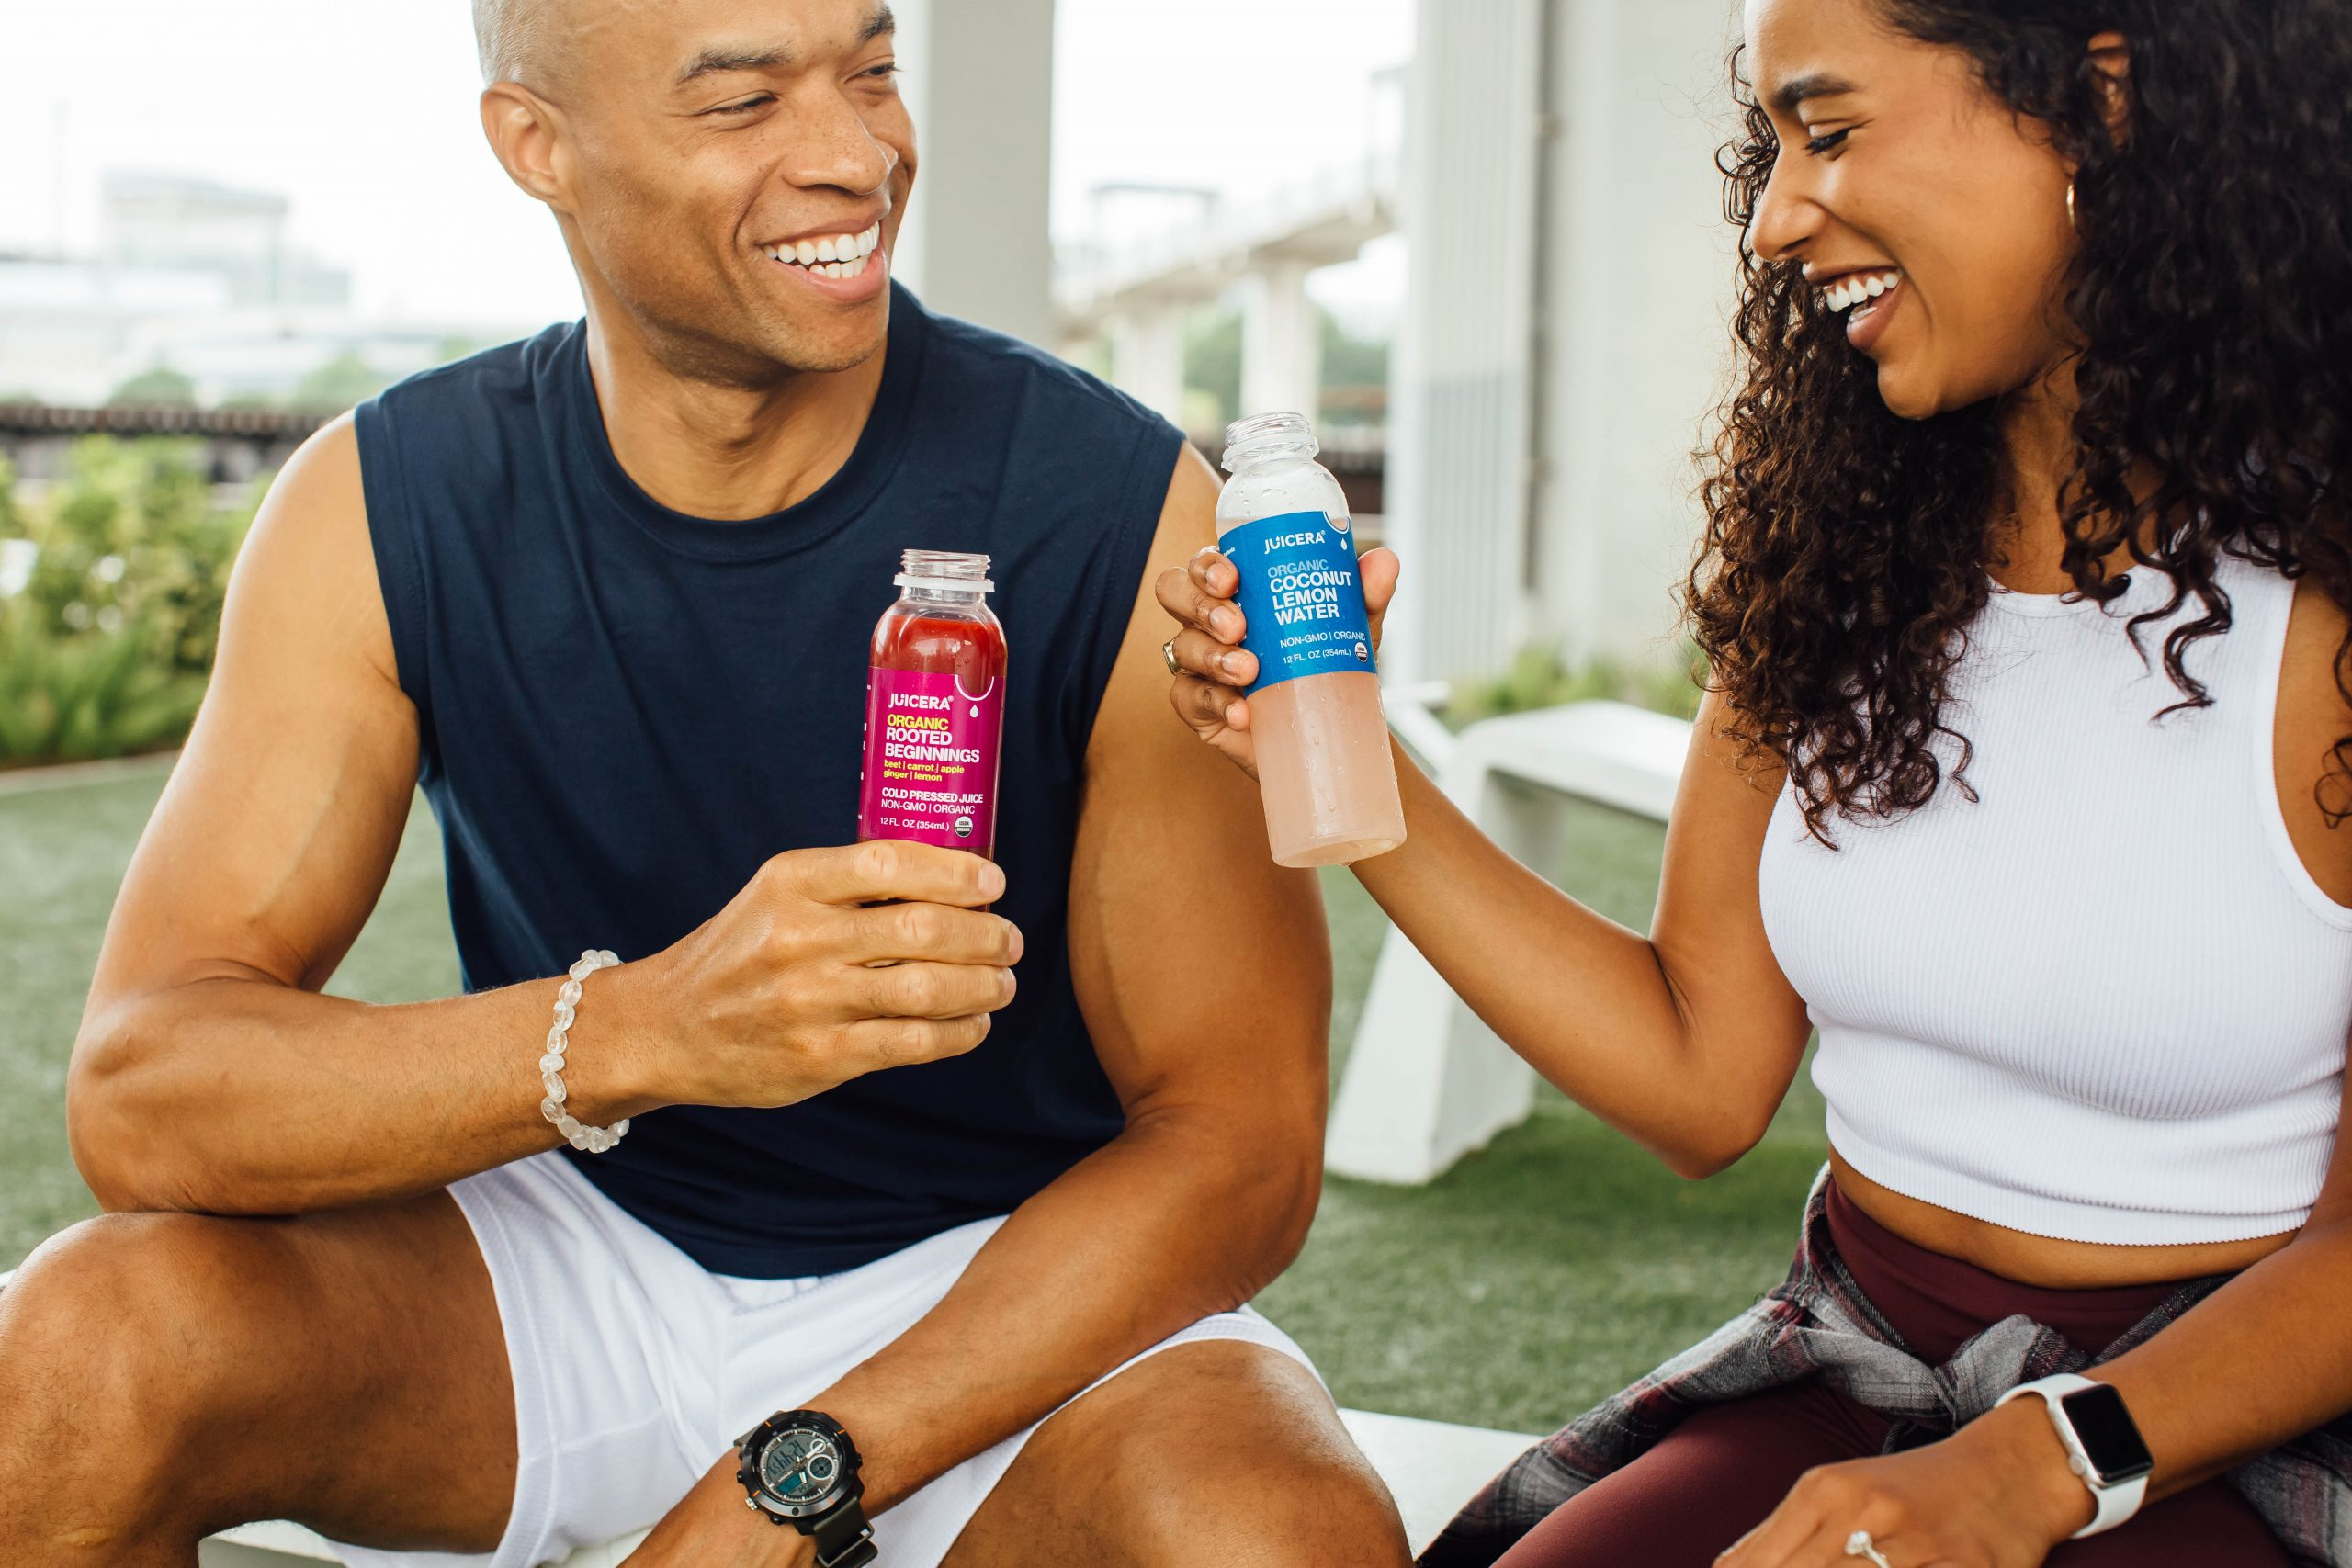 Juicera juice brand product photography of a man and a woman enjoying after a workout.